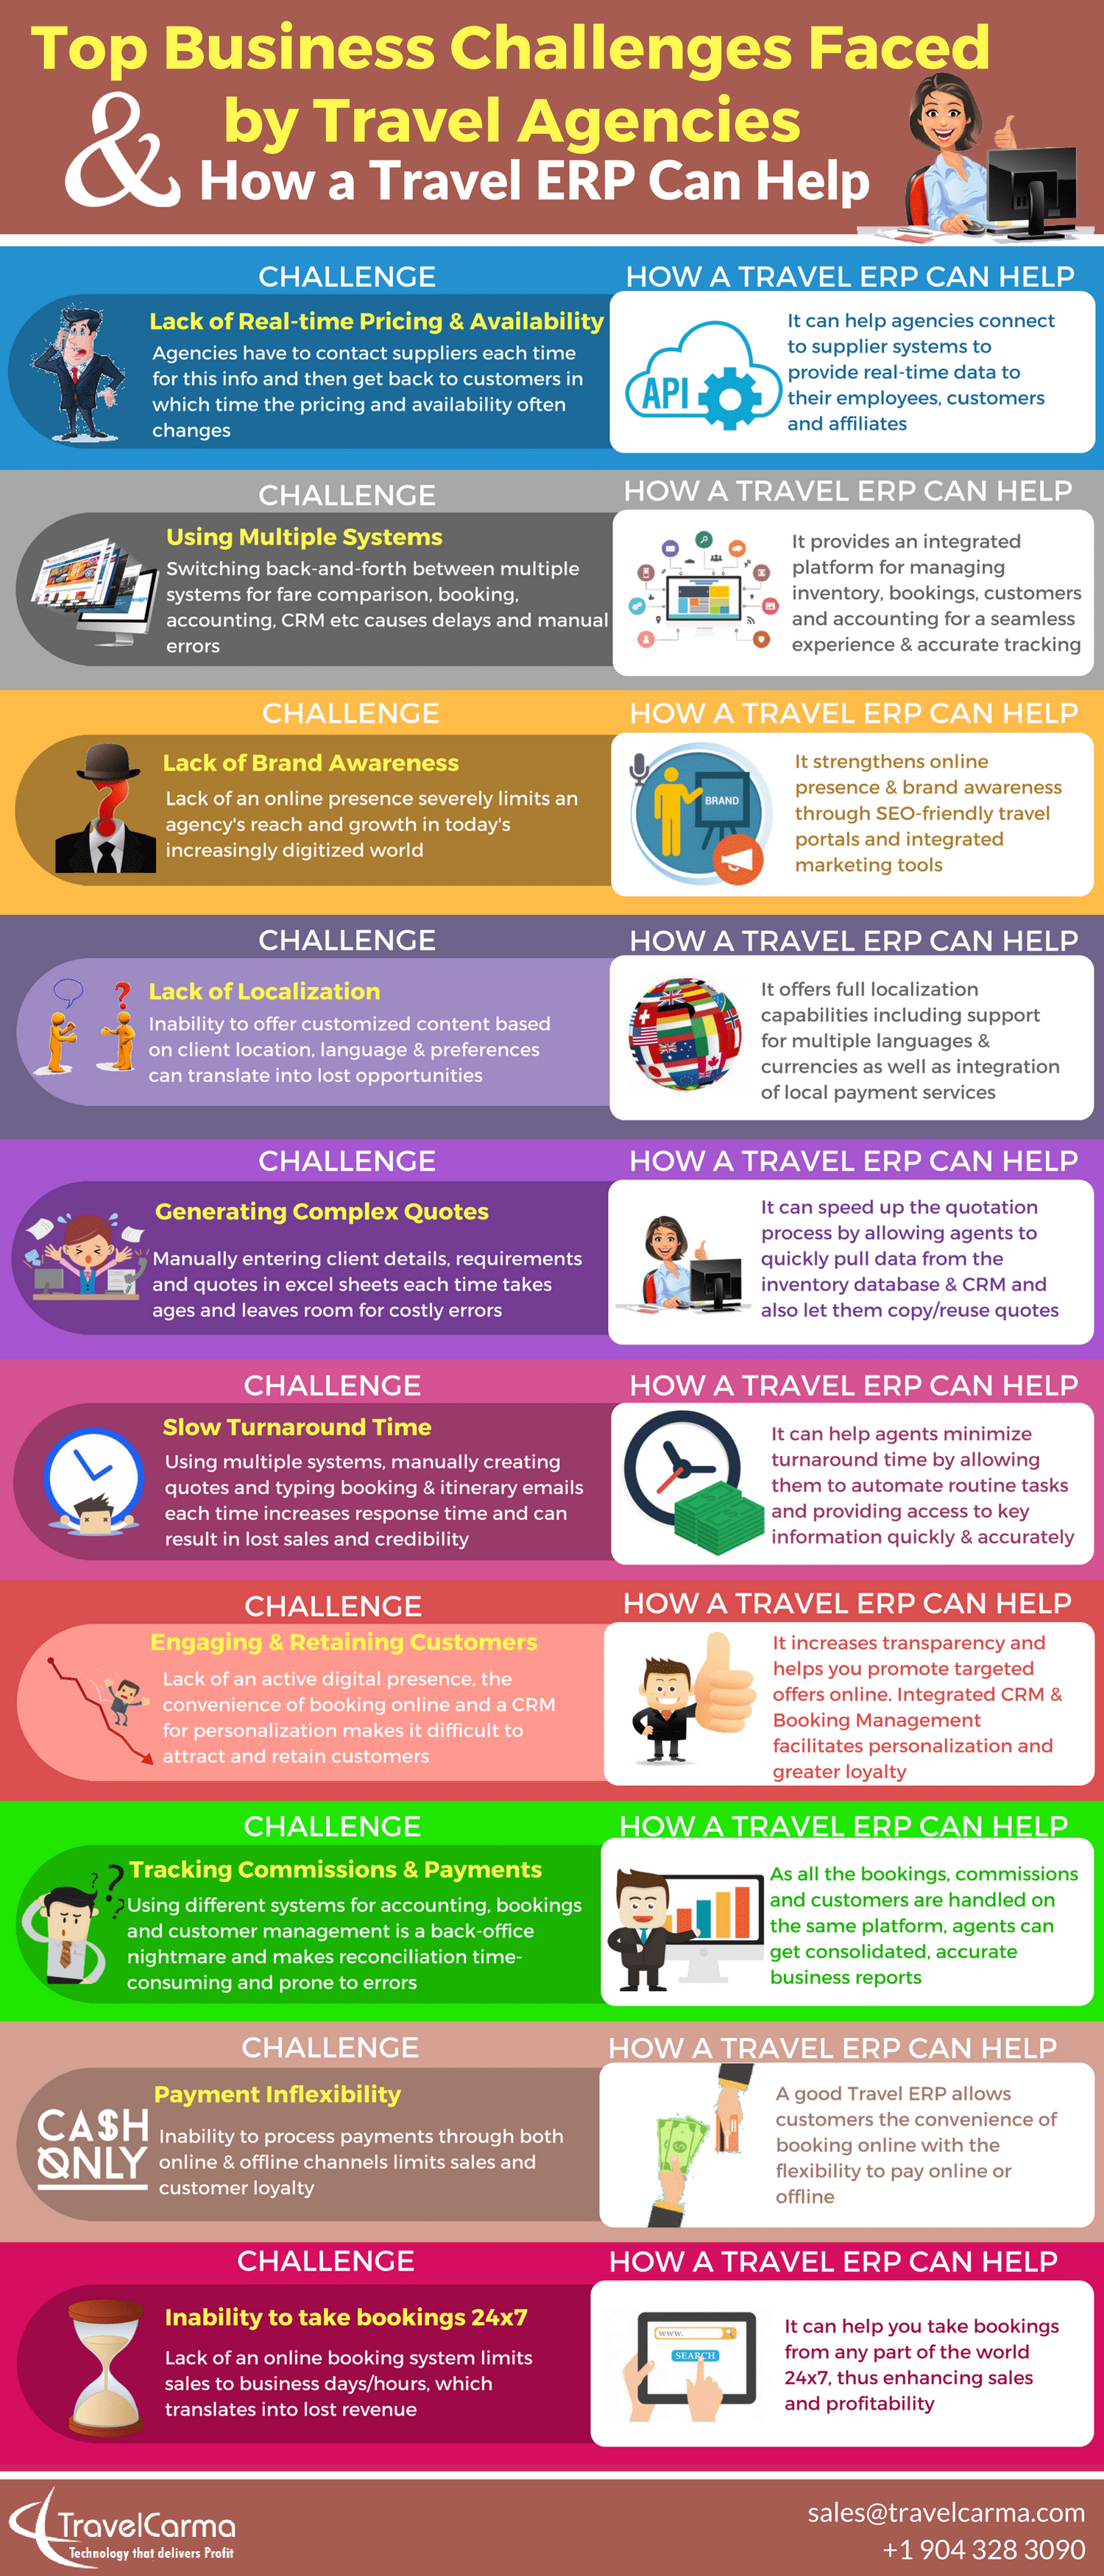 challenges faced by change agents As long as you're working with customers every day, you'll continue to face the myriad of challenges that support brings but by being prepared with the tools and techniques to turn those challenges into opportunities to build better relationships with your customers, you can make your life—and theirs—a lot easier.